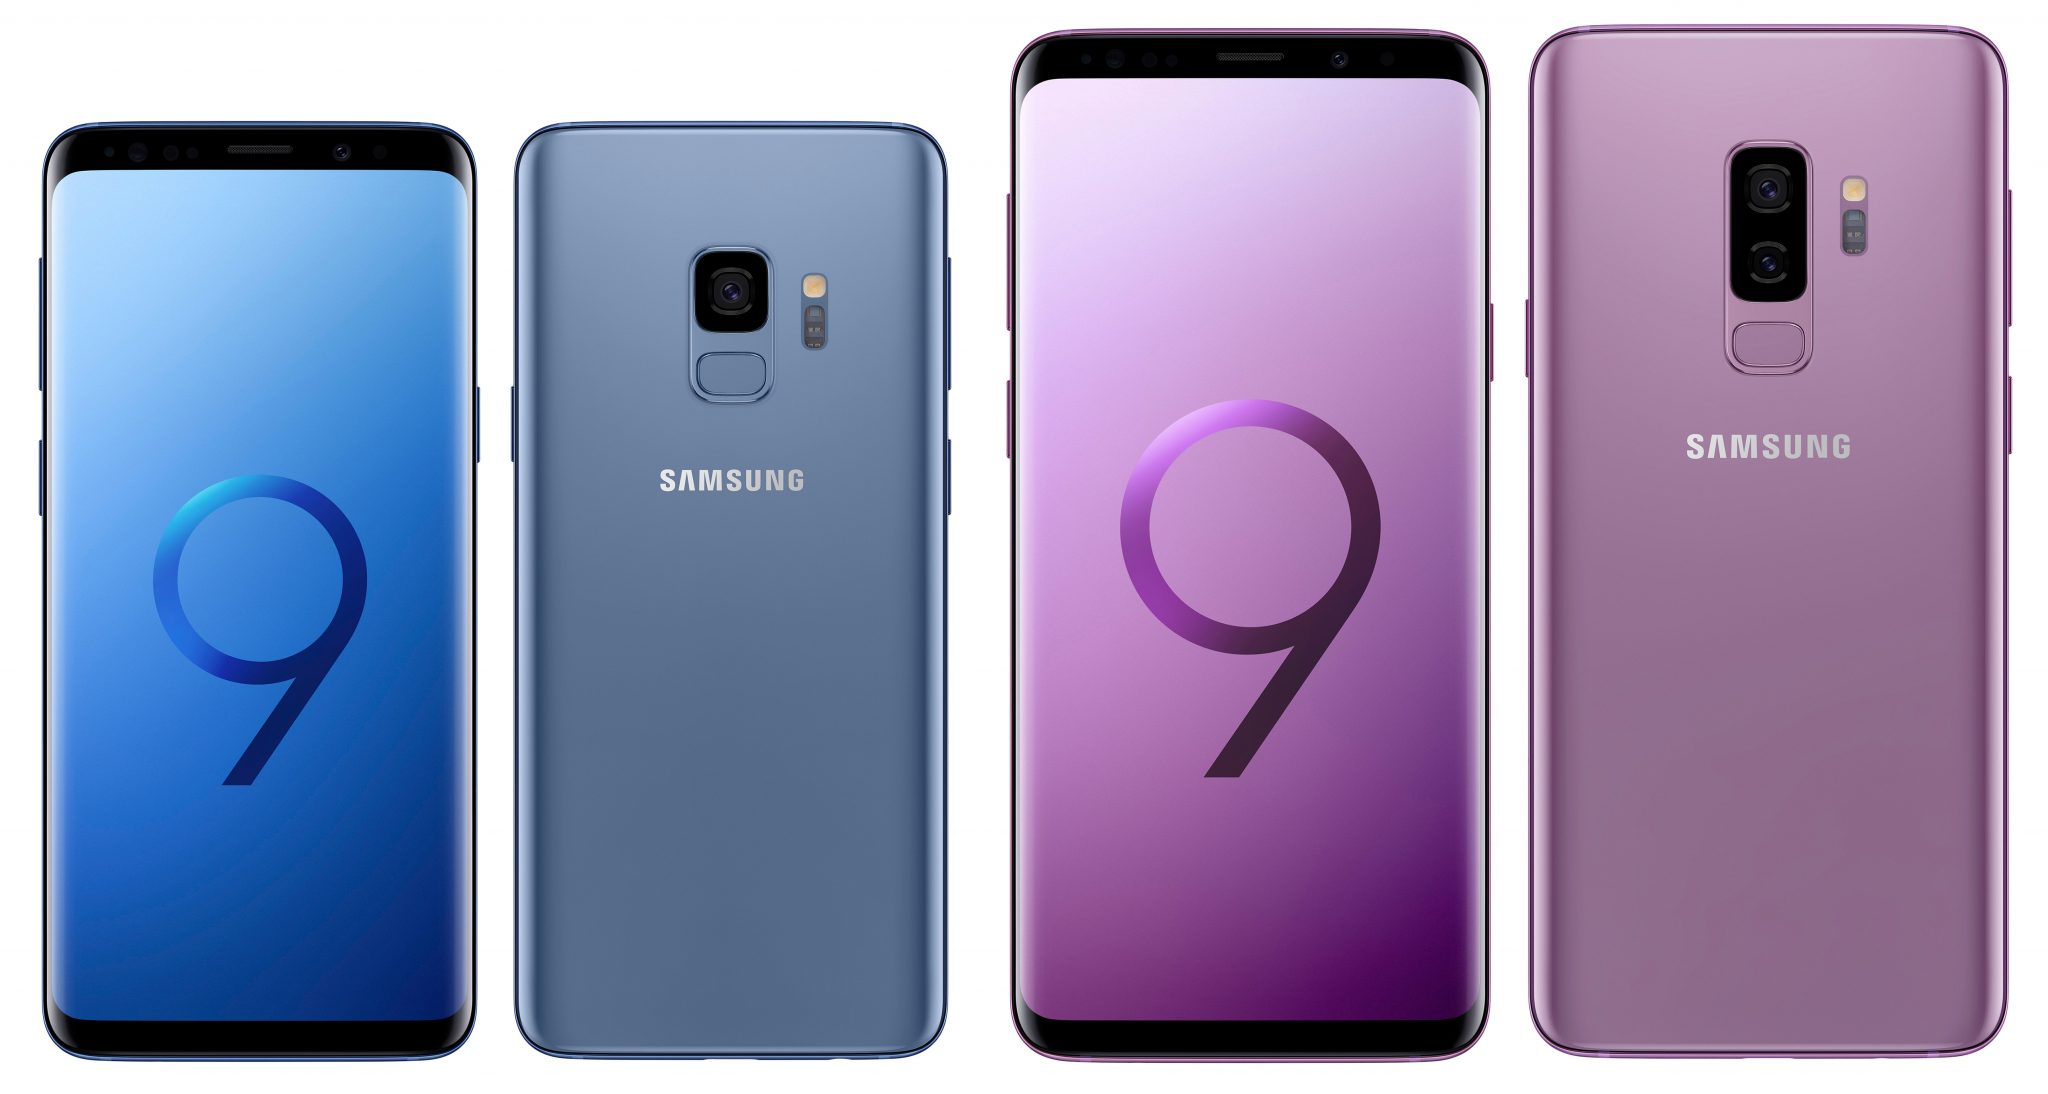 galaxy s9 and galaxy s9 plus - Meet the Galaxy S9 and S9+ which comes with AR Emoji, dual speakers and super slow mo video